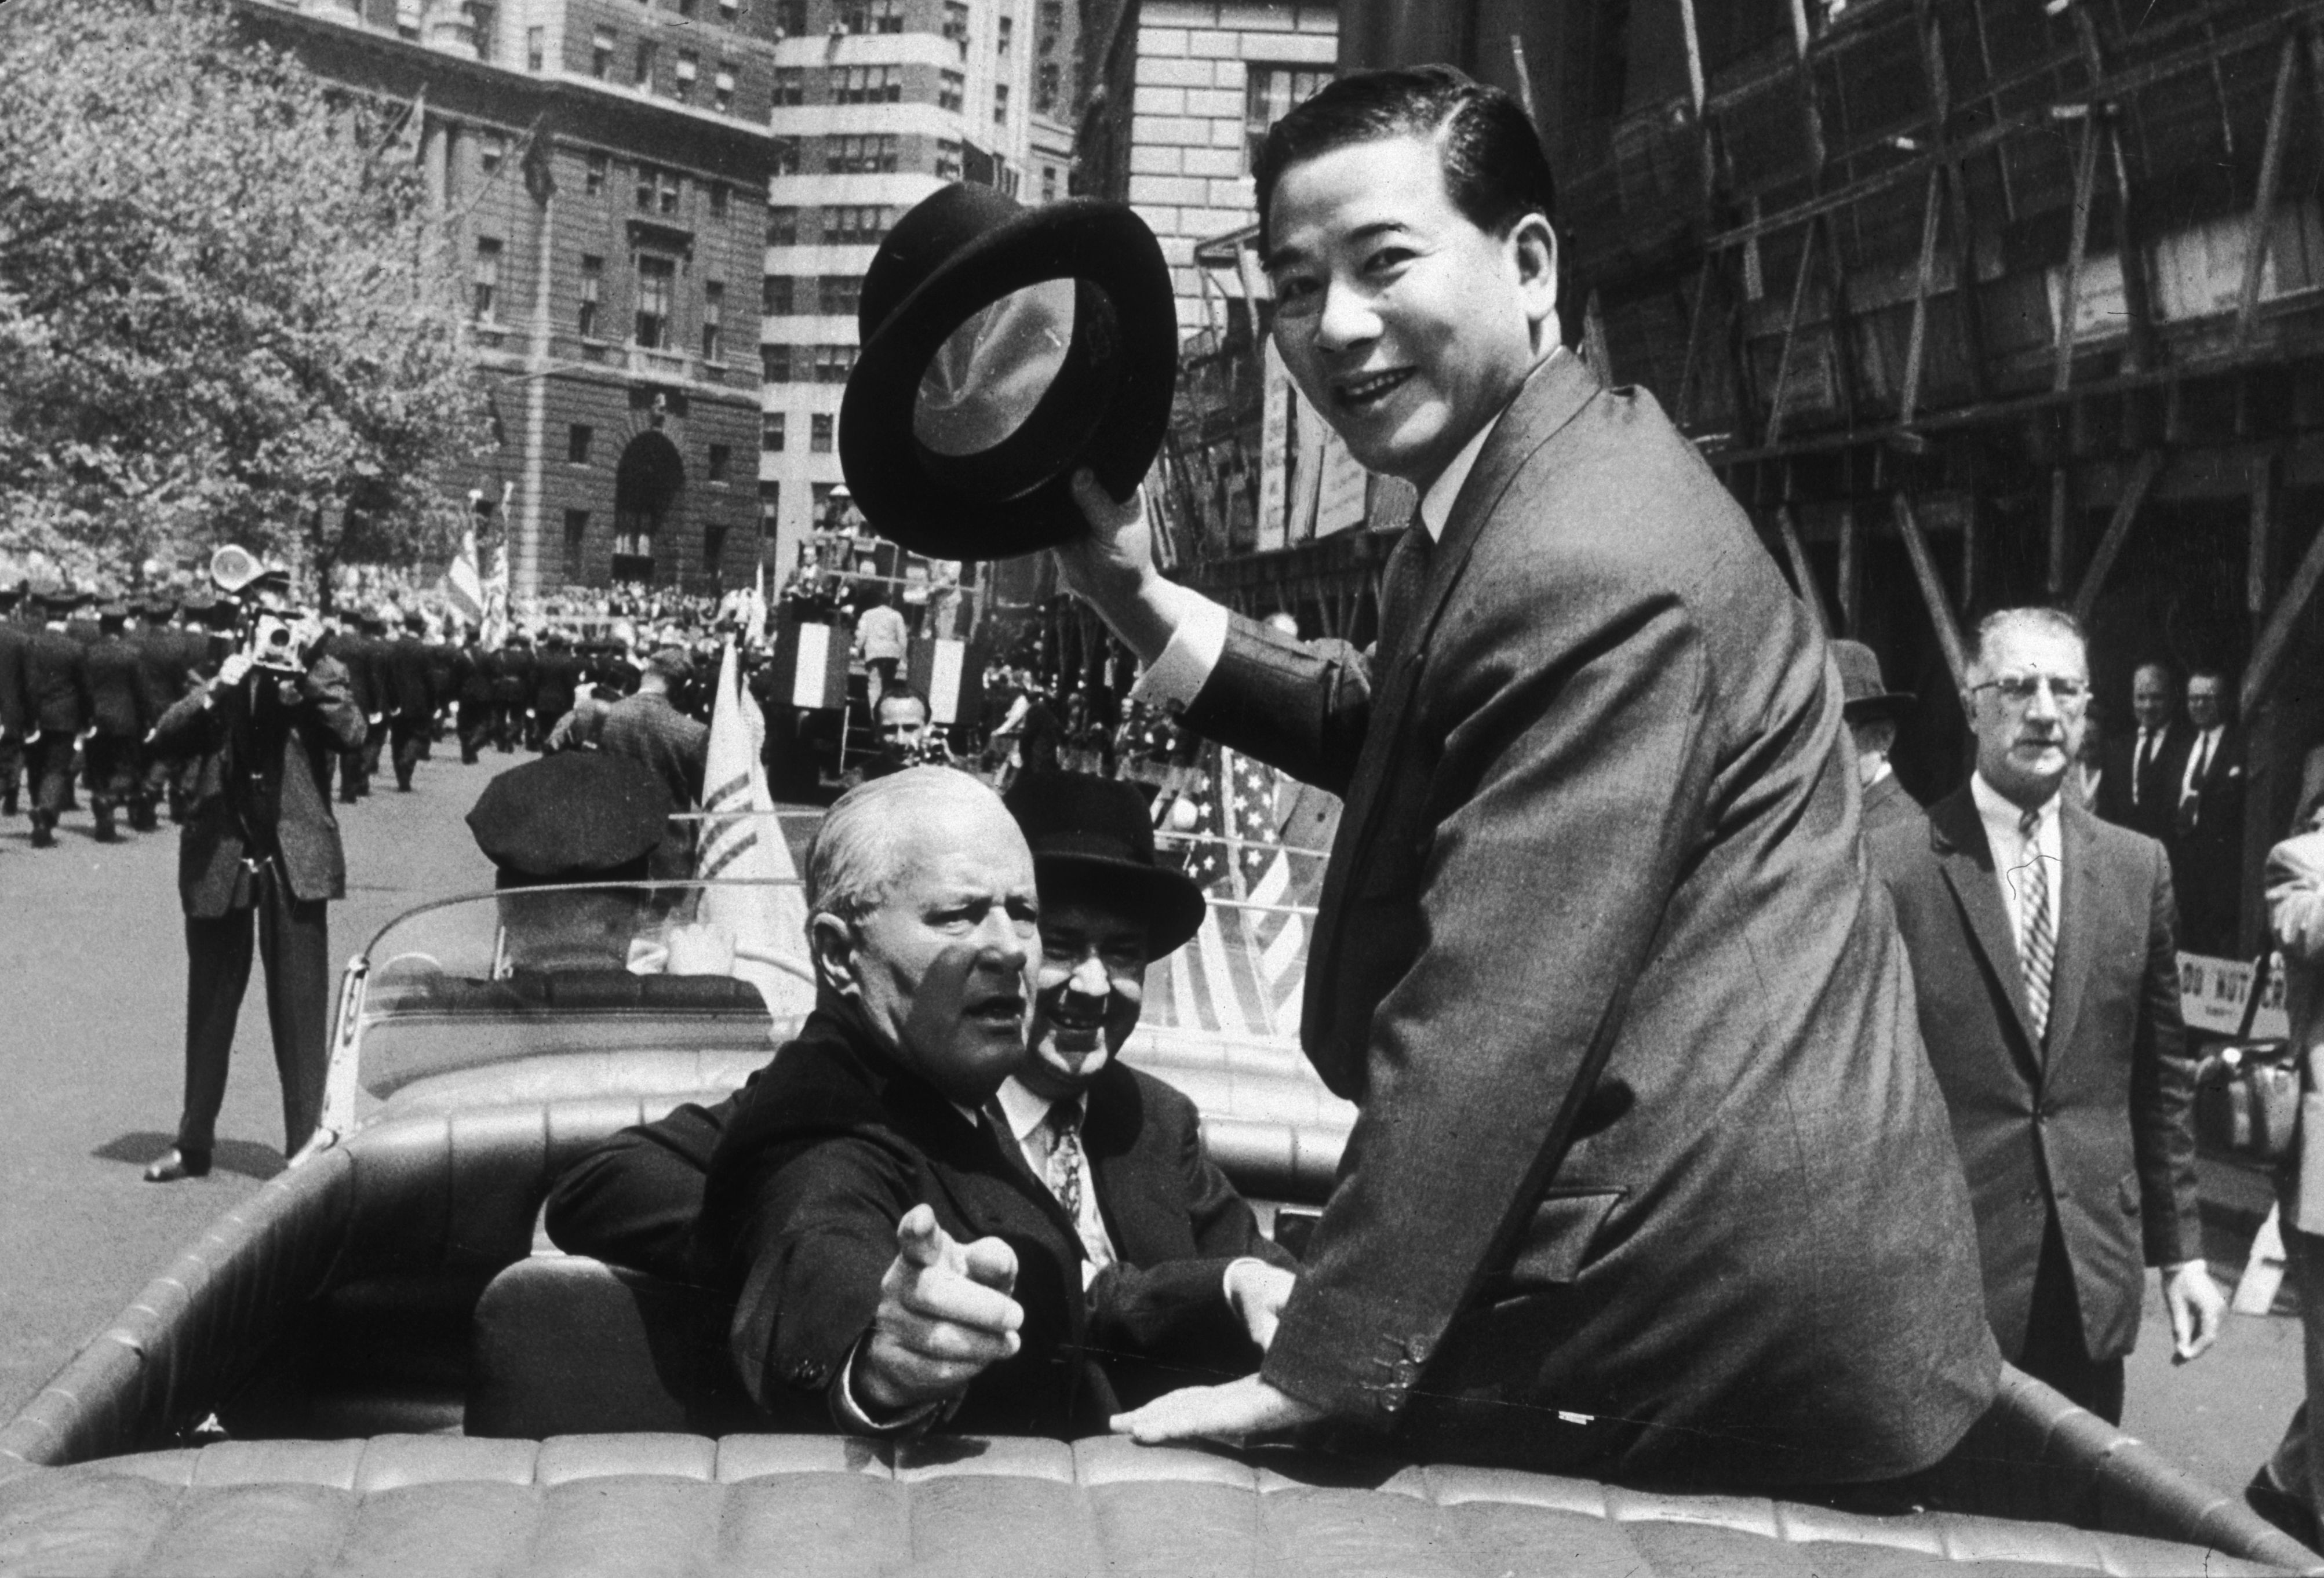 South Vietnamese President Ngo Dinh Diem rides with Commissioner Richard Patterson and Chief Protocol of the State Department, Wiley T. Buchanan Jr. in a parade in New York City.